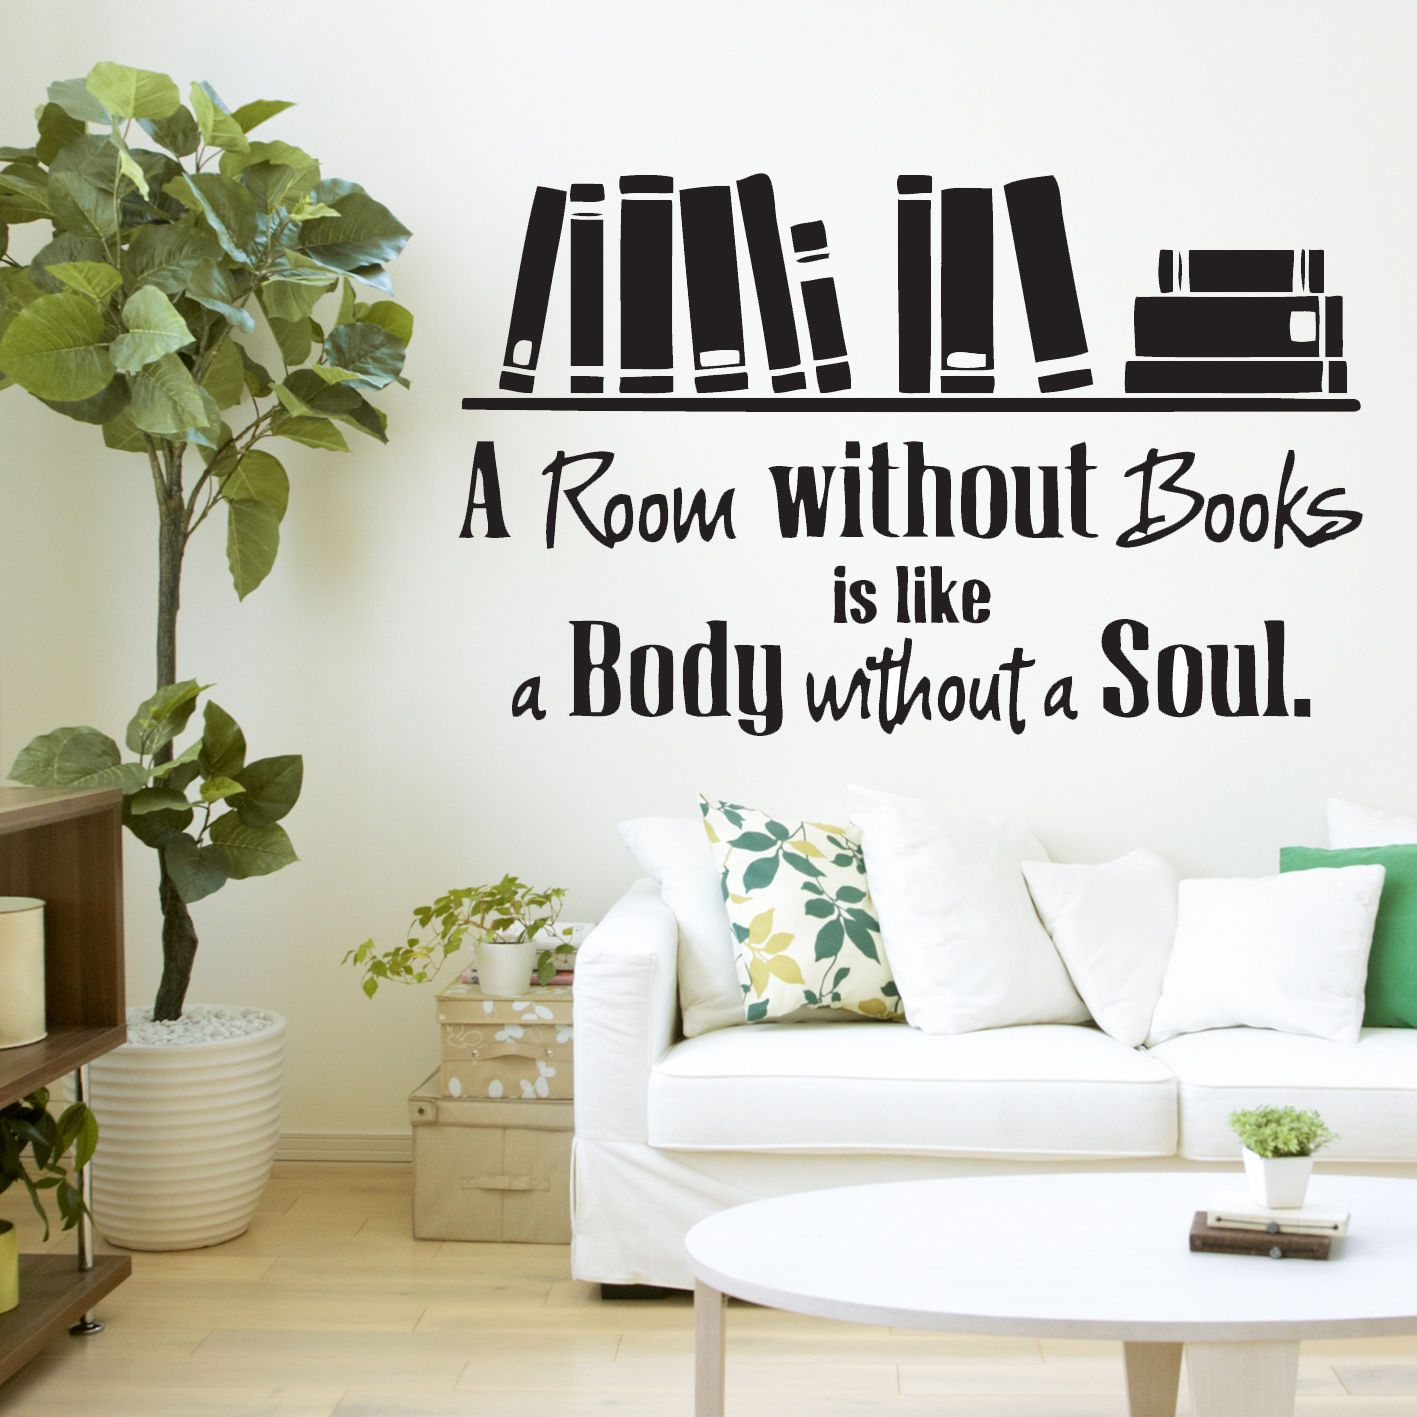 A Room Without Books Quote Library Wall Sticker Decal Vinyl Wall Art Transfer Library Wall Vinyl Wall Art Vinyl Wall Decals